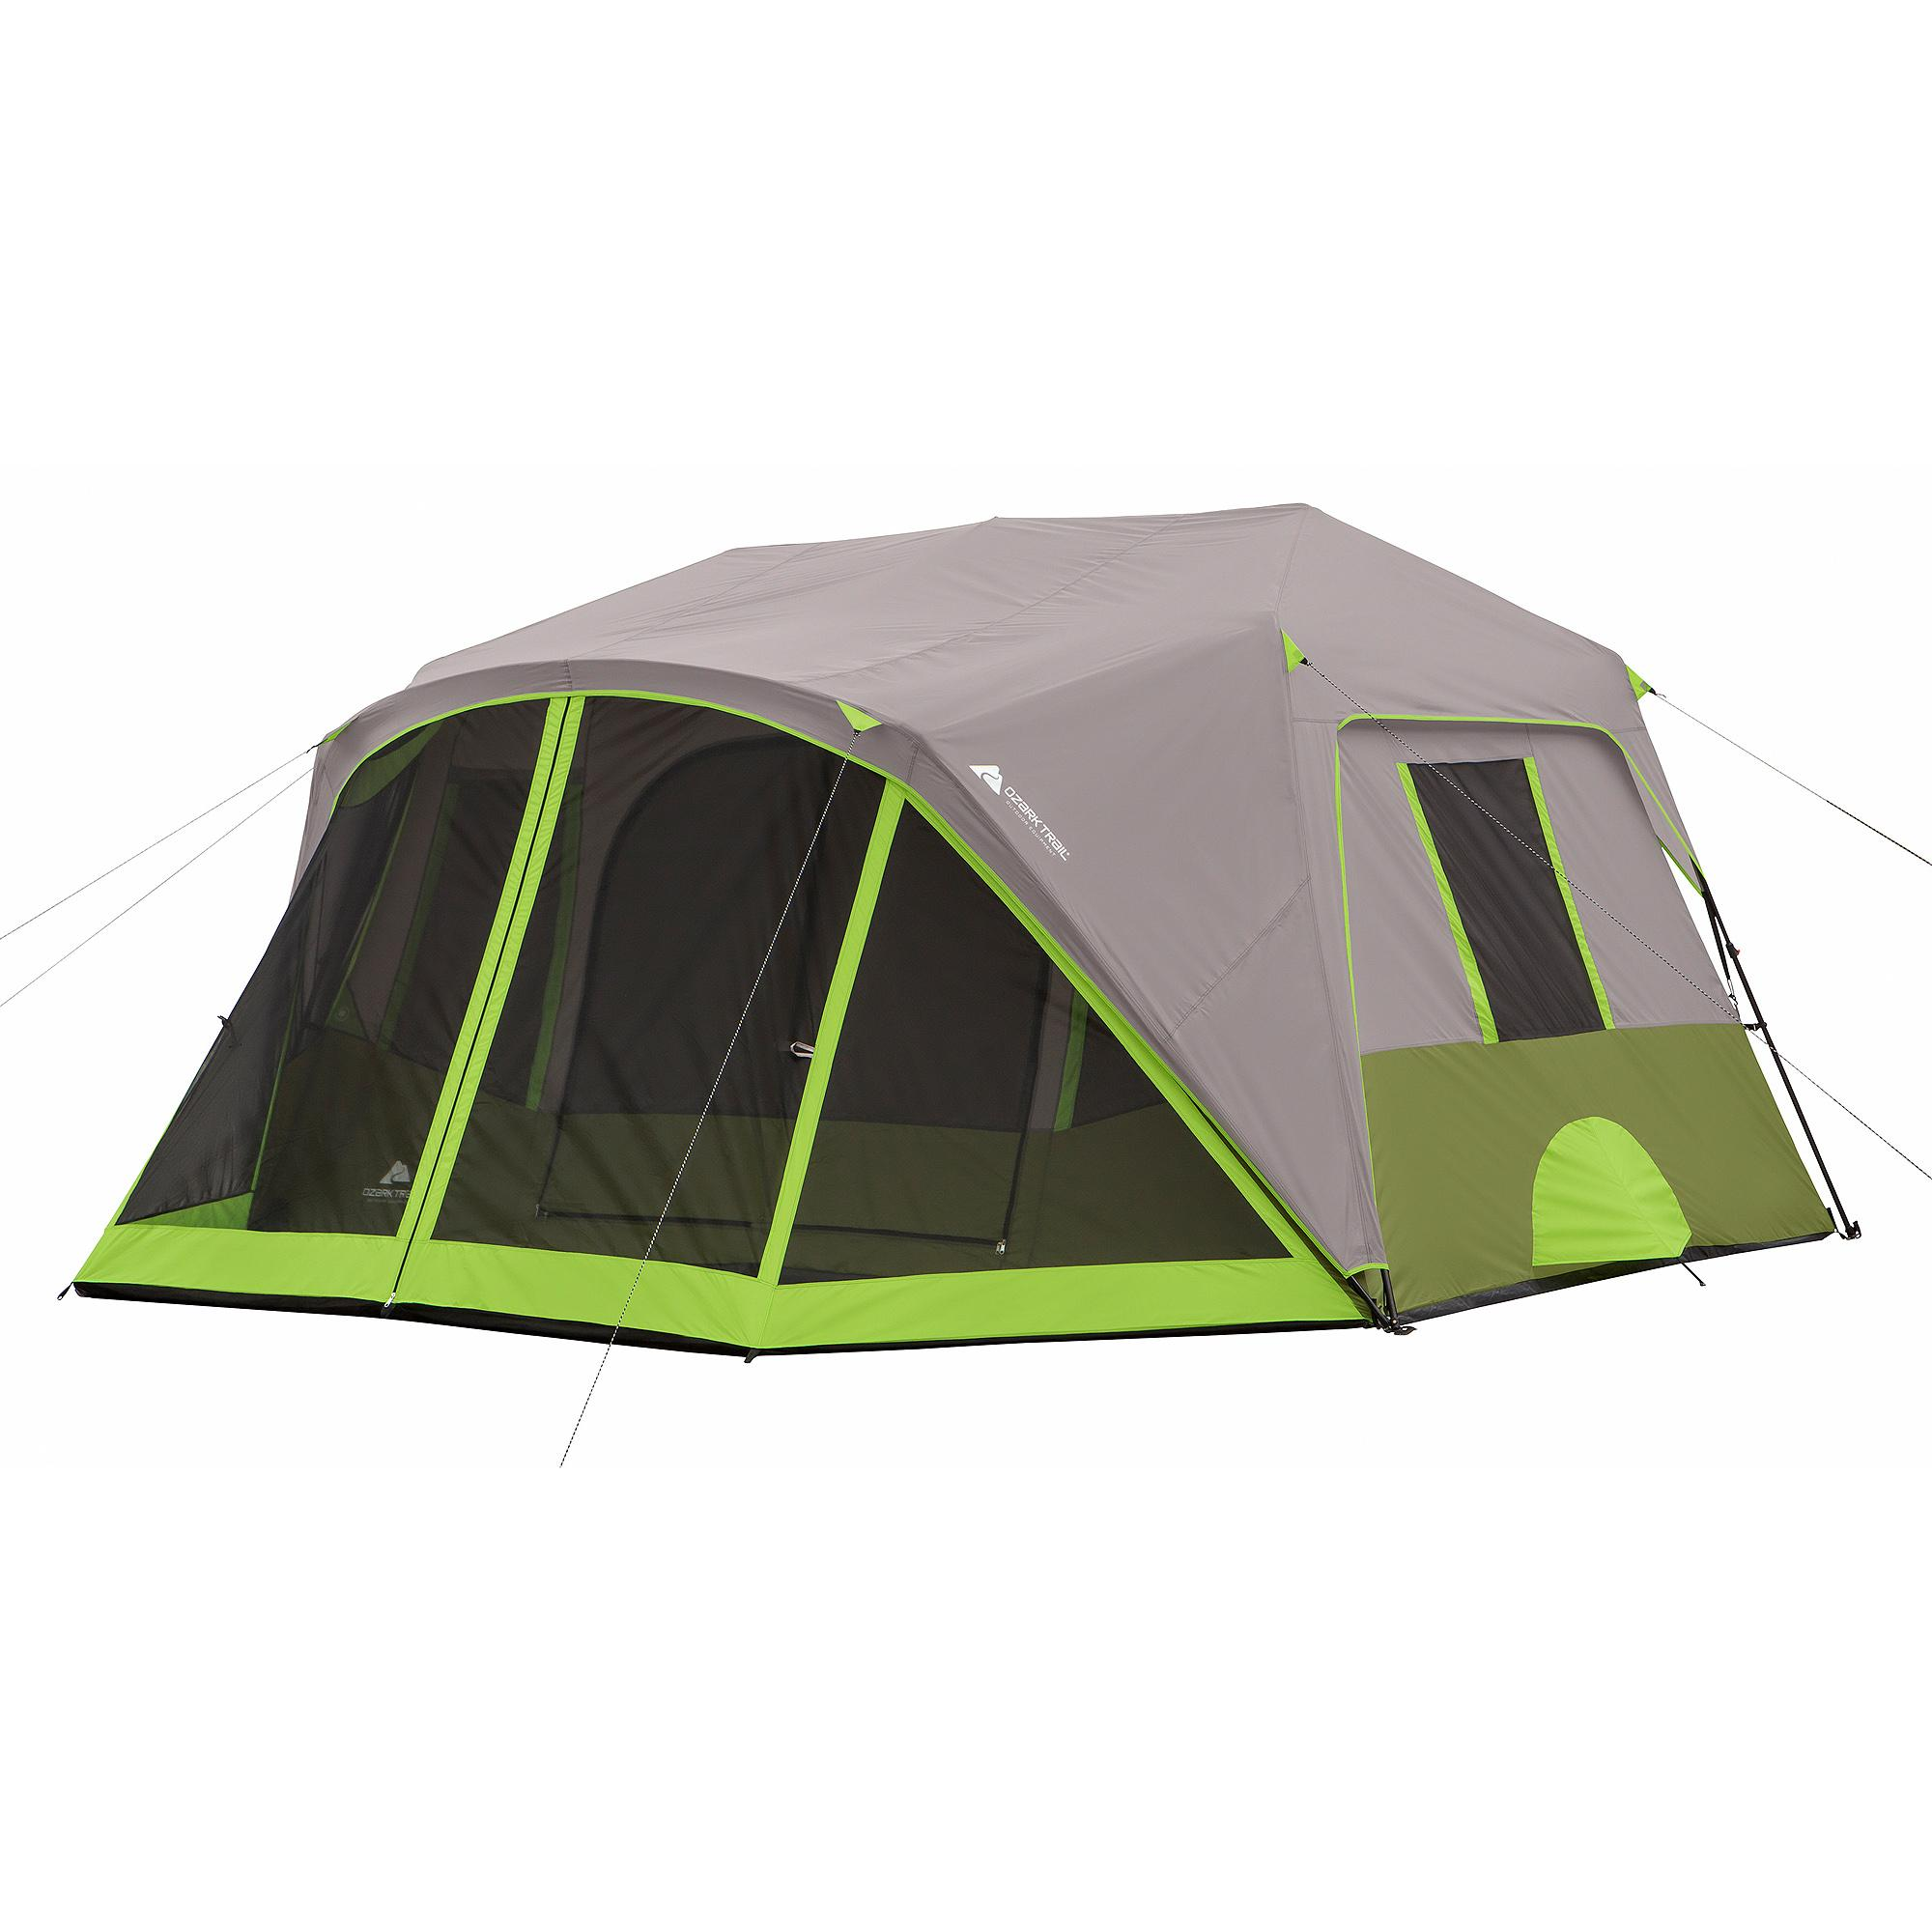 Image is loading Ozark-Trail-9-Person-2-Room-Instant-Cabin-  sc 1 st  eBay & Ozark Trail 9 Person 2 Room Instant Cabin Tent with Screen Room ...